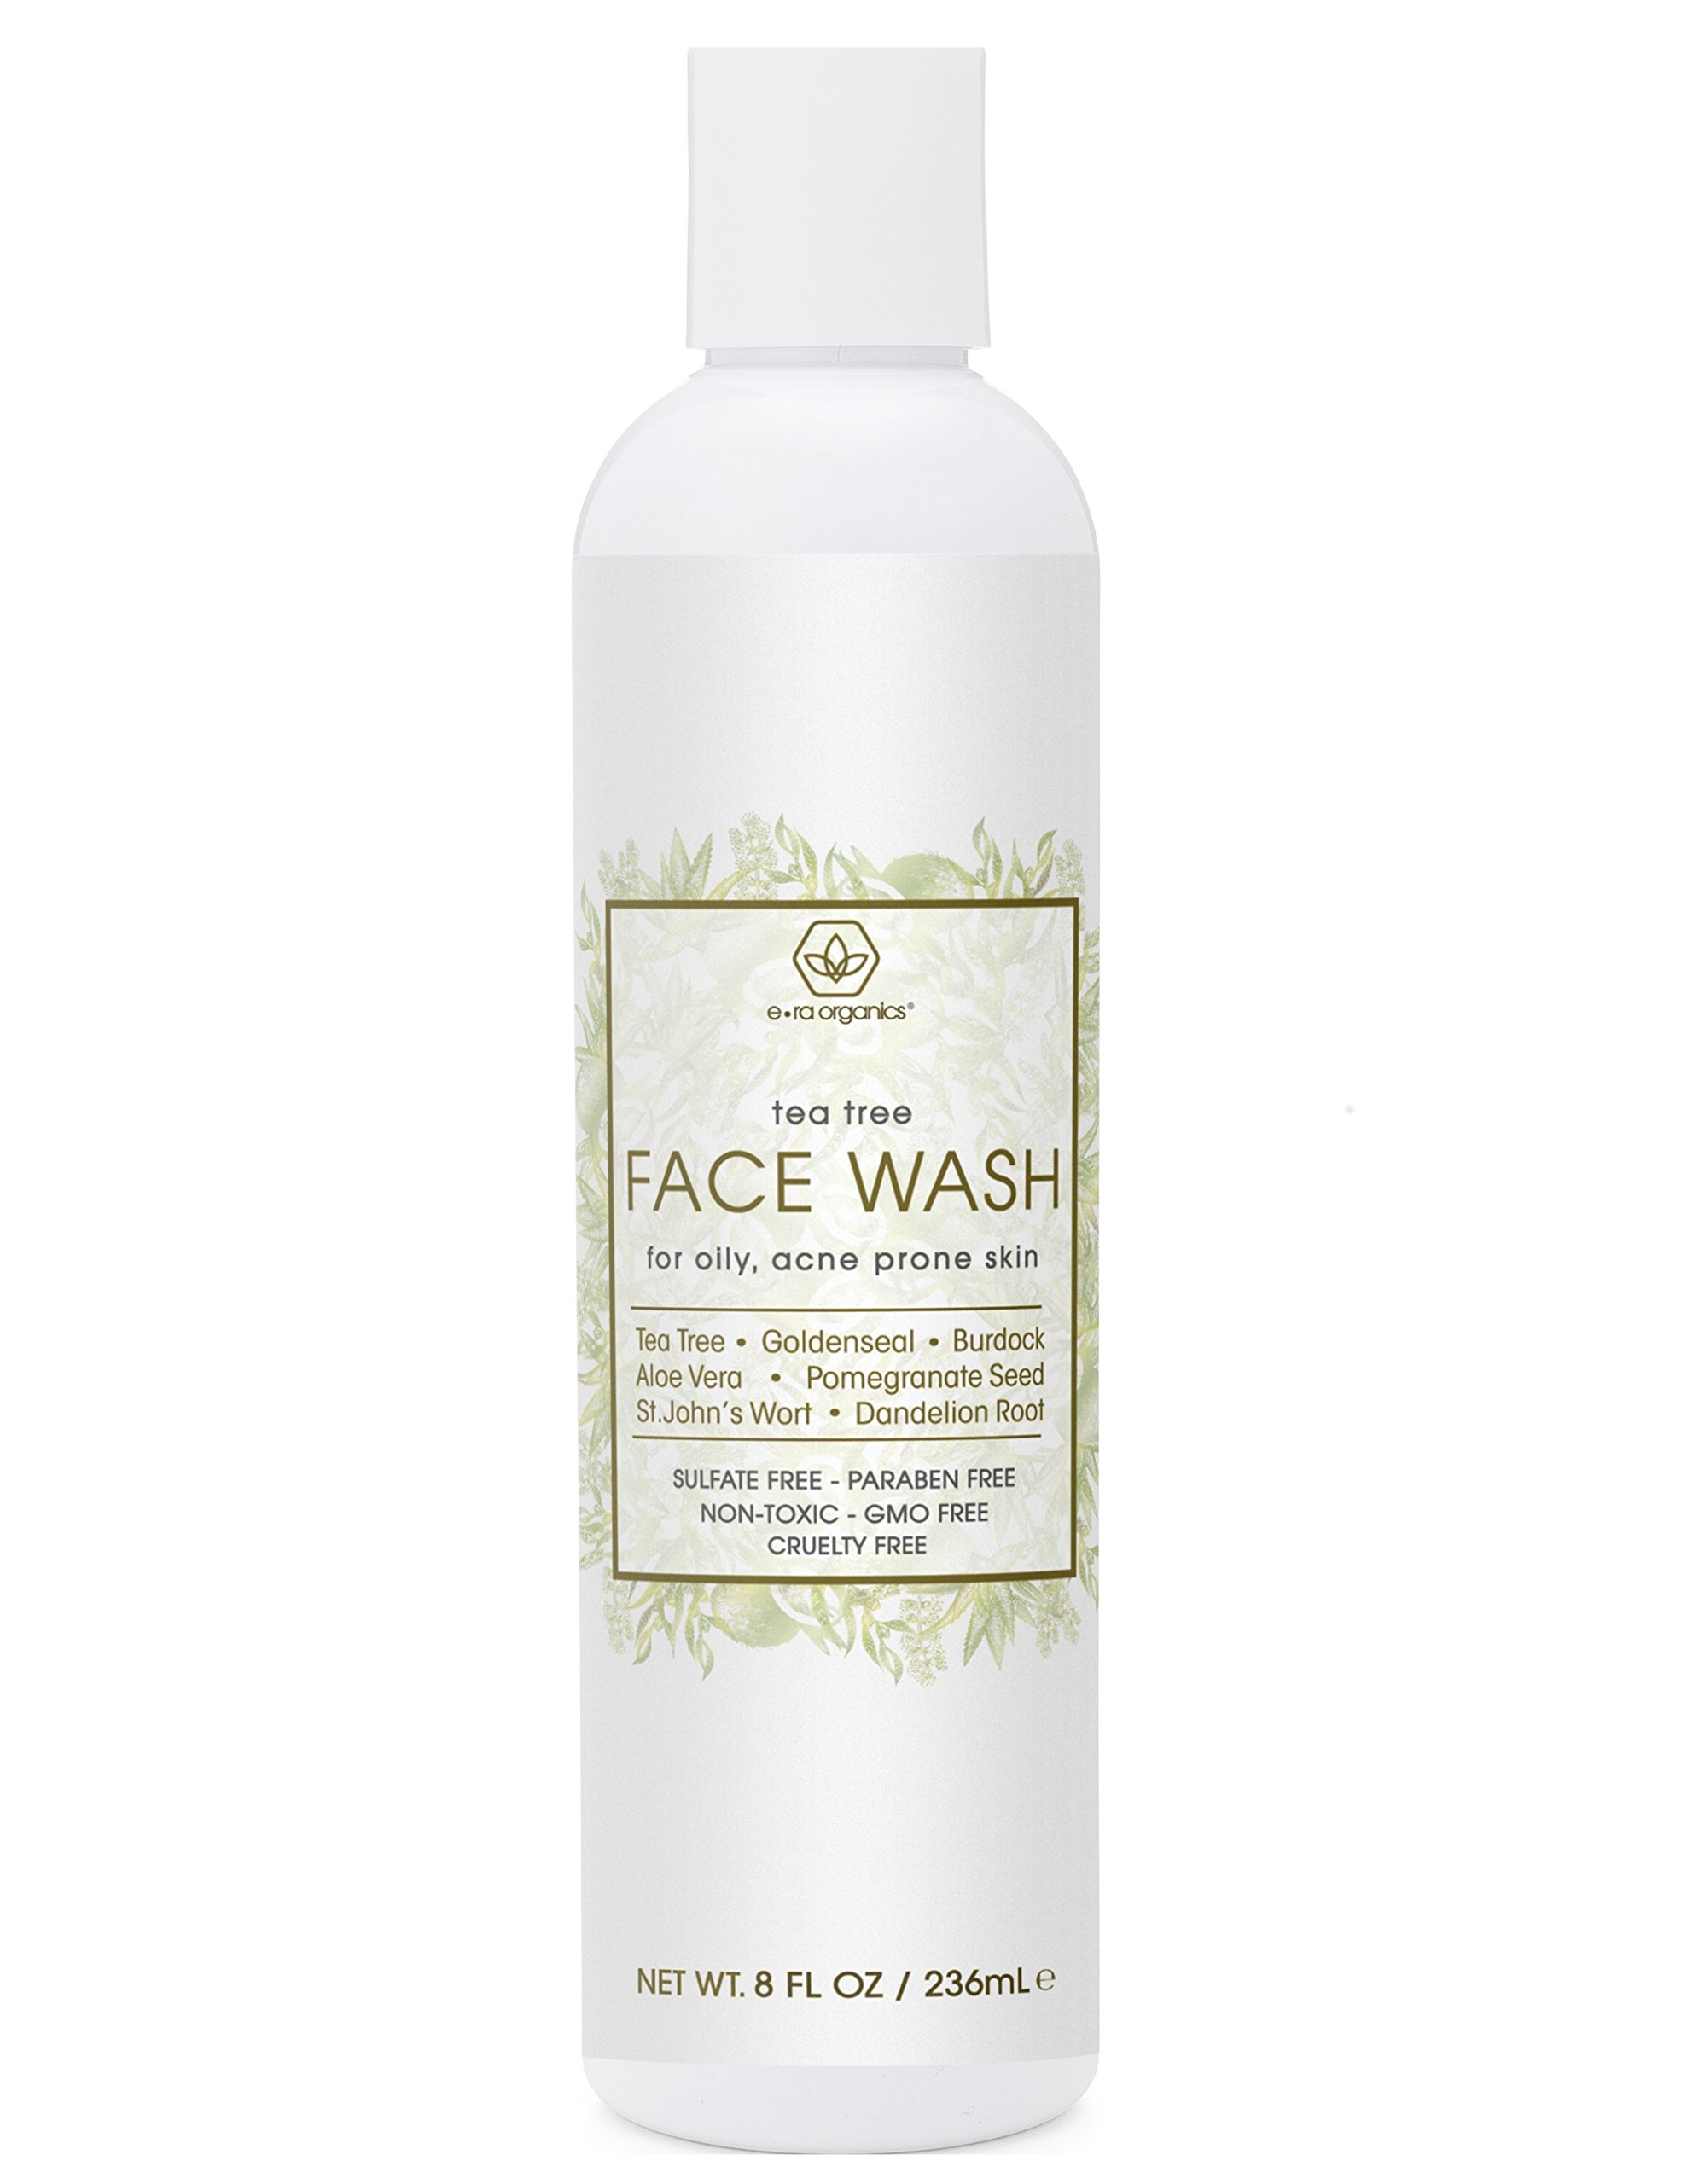 Tea Tree Oil Face Cleanser – Face & Body Wash for Dry, Oily, Acne Prone Skin & Rosacea 8oz Natural & Organic Facial Wash to Moisturize, Nourish, Soothe Redness & Inflammation